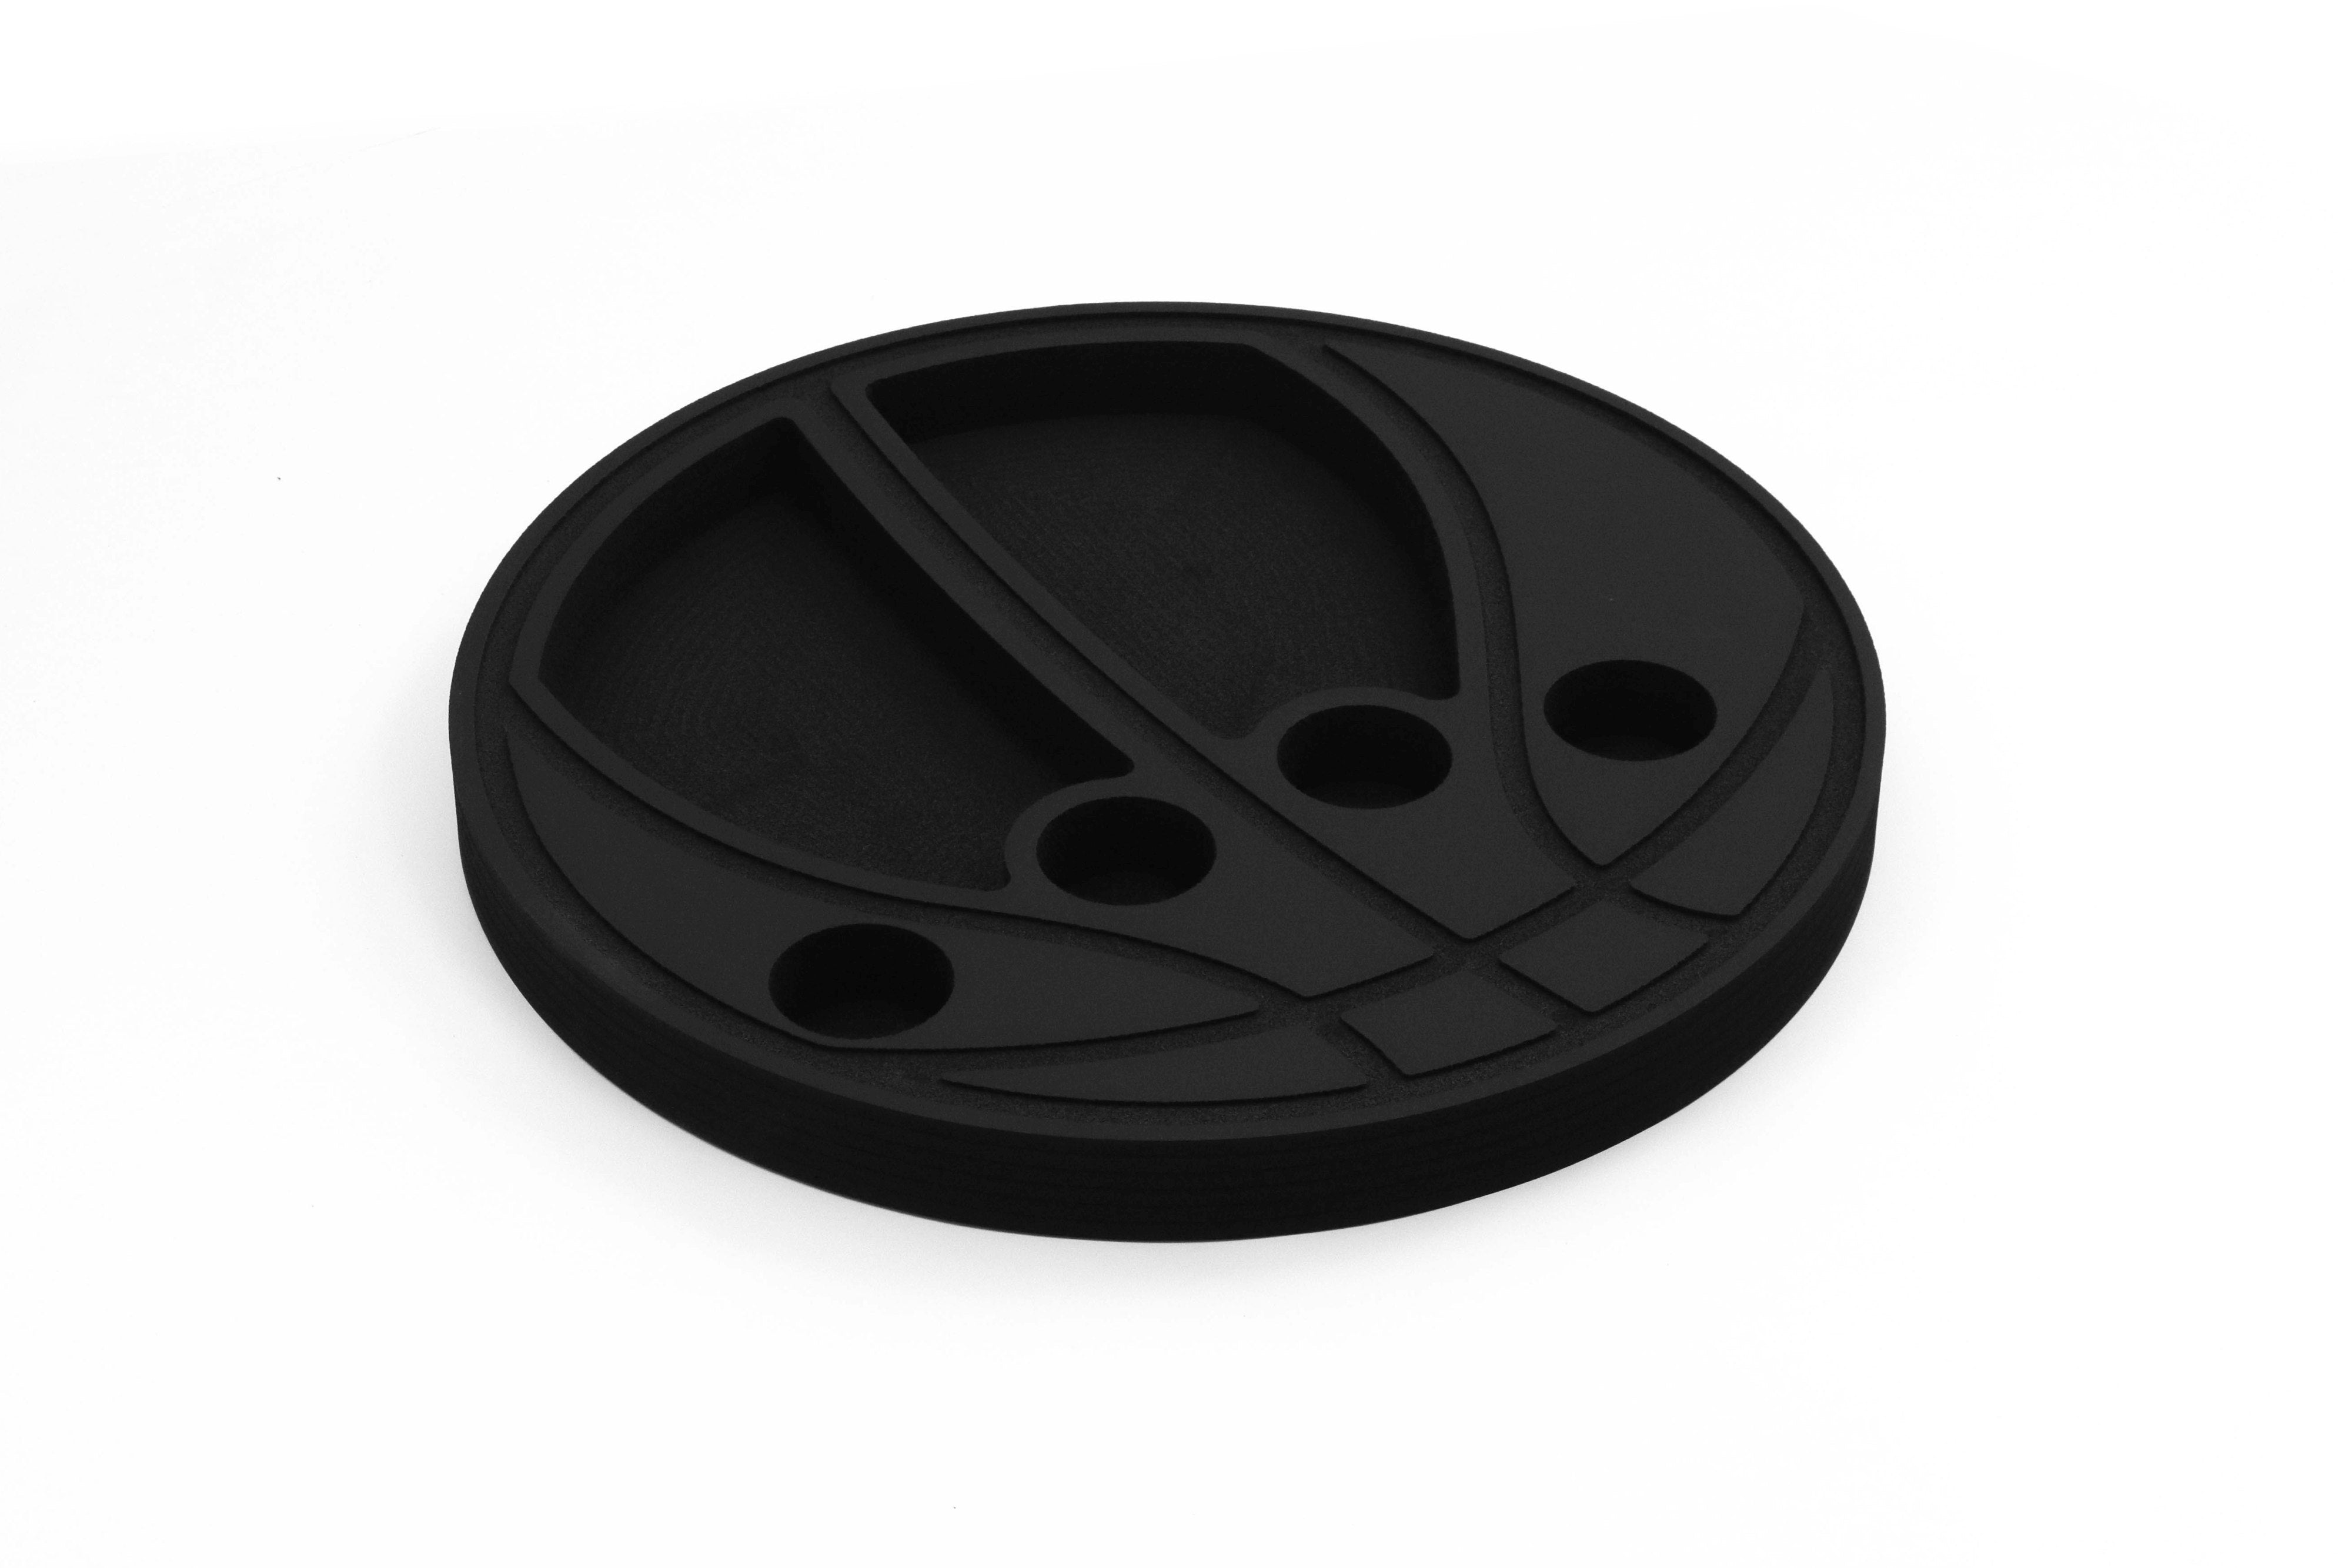 Basketball Shaped Drink Holder Floating Refreshment Table Tray for Pool or Beach Party Float Lounge Durable Black Foam 6 Compartment 2 Feet